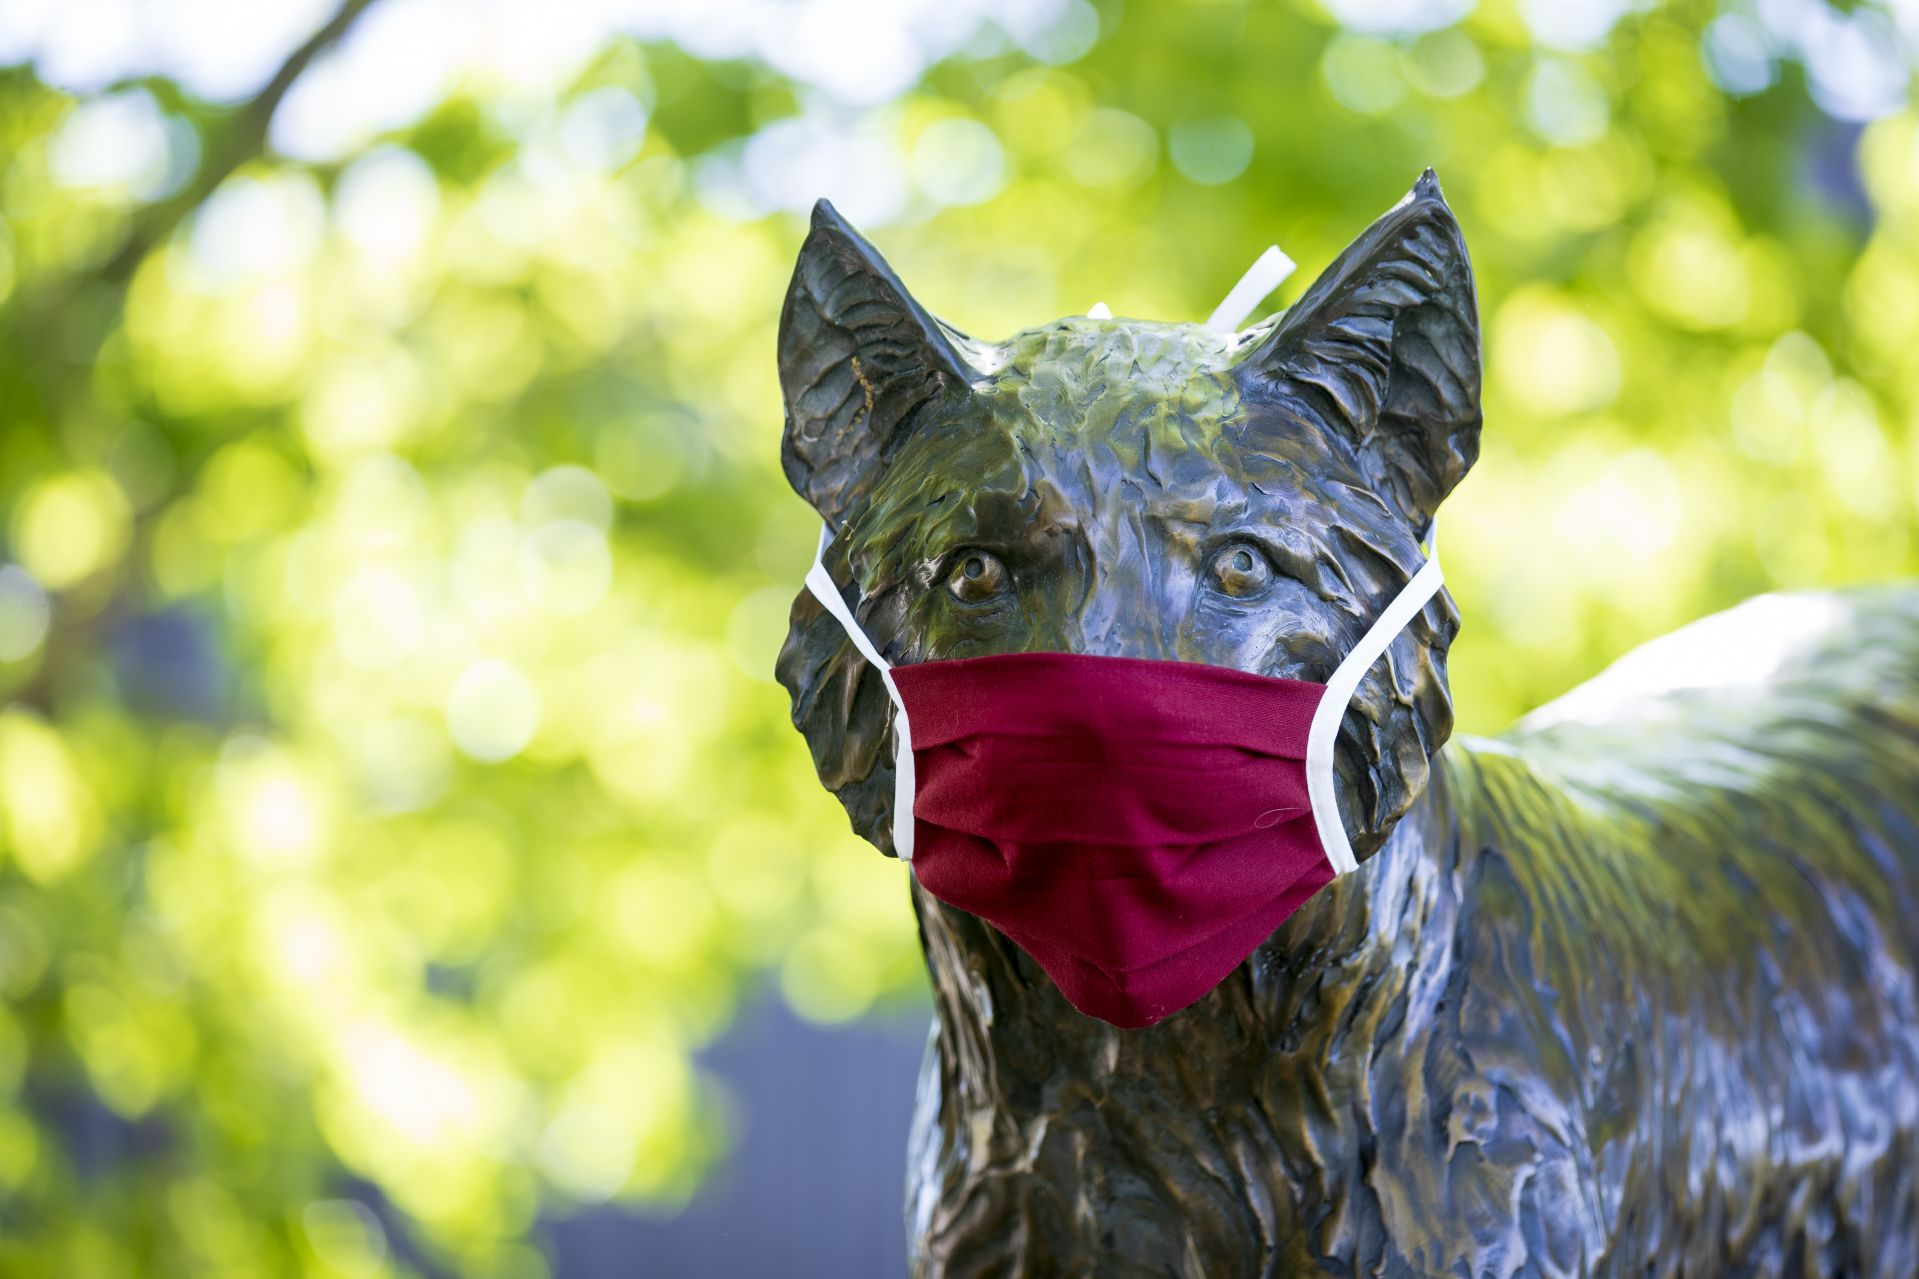 Scenes from the Bates Campus on Commencement Day, May 31, 2020. The bobcat statue on the walk to Merrill Gym is outfitted with a coronavirus mask made by Christine McDowell's crew in Pettigrew Hall.